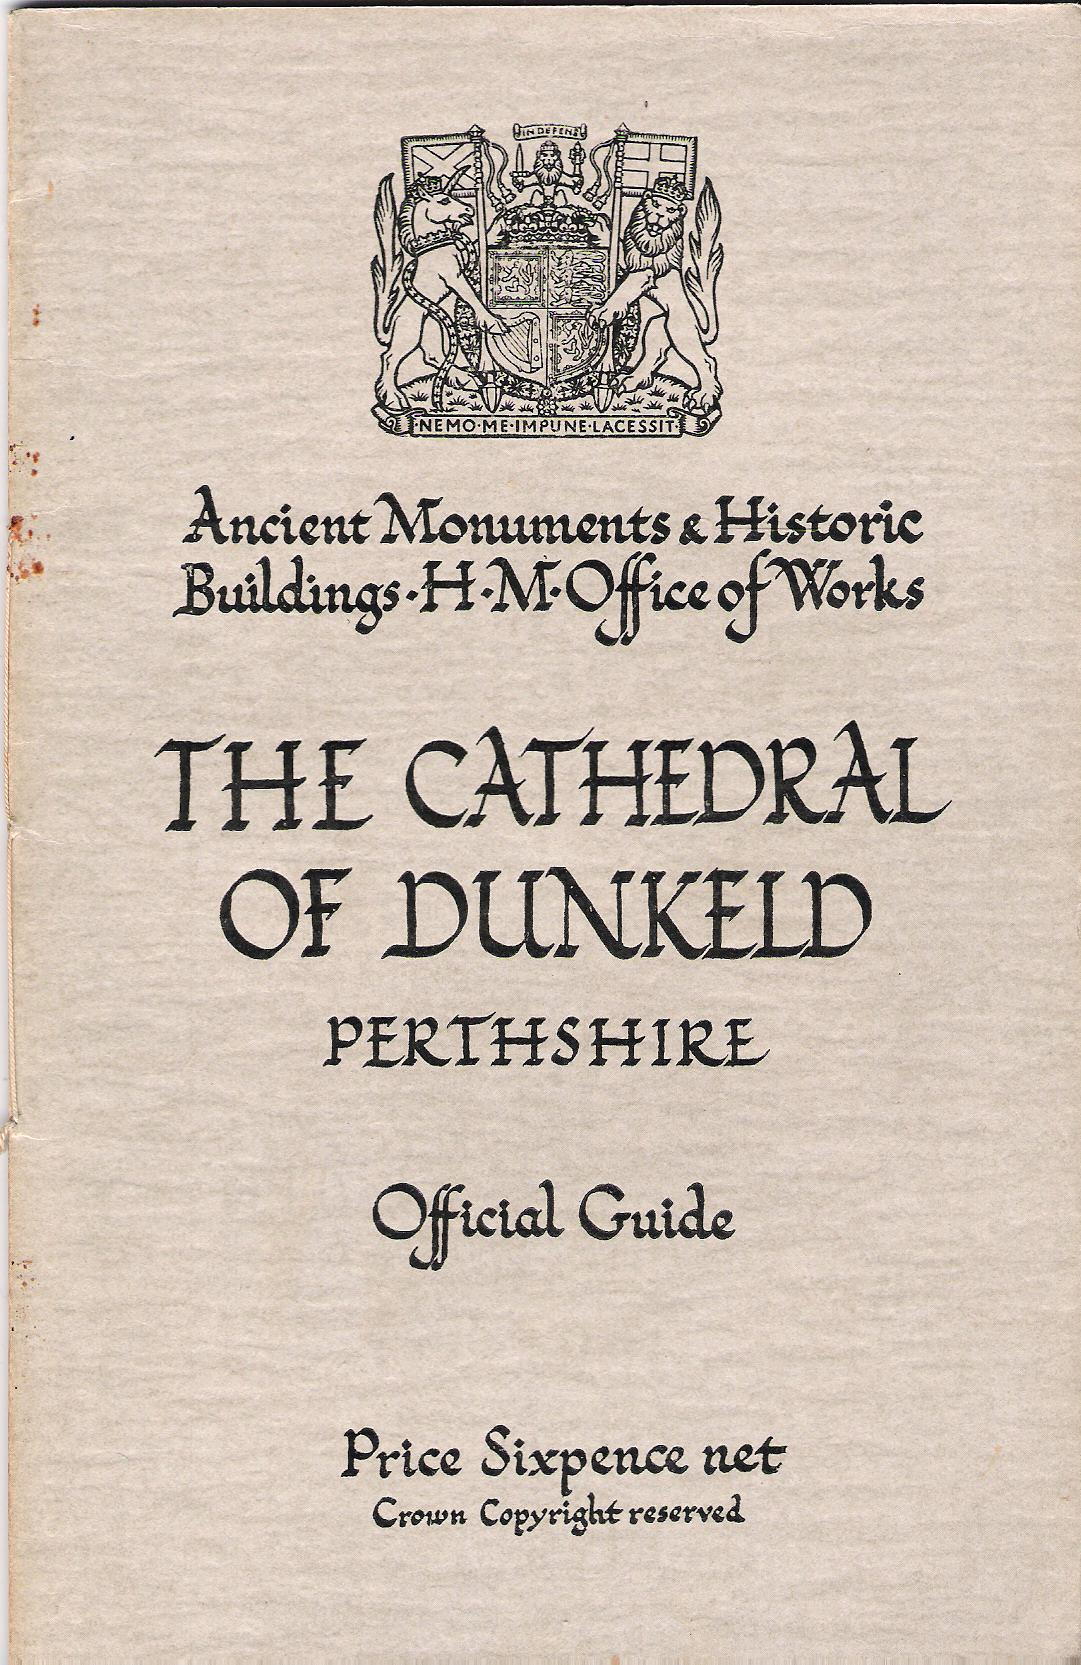 Image for The Cathedral of Dunkeld, Perthshire: Official Guide.